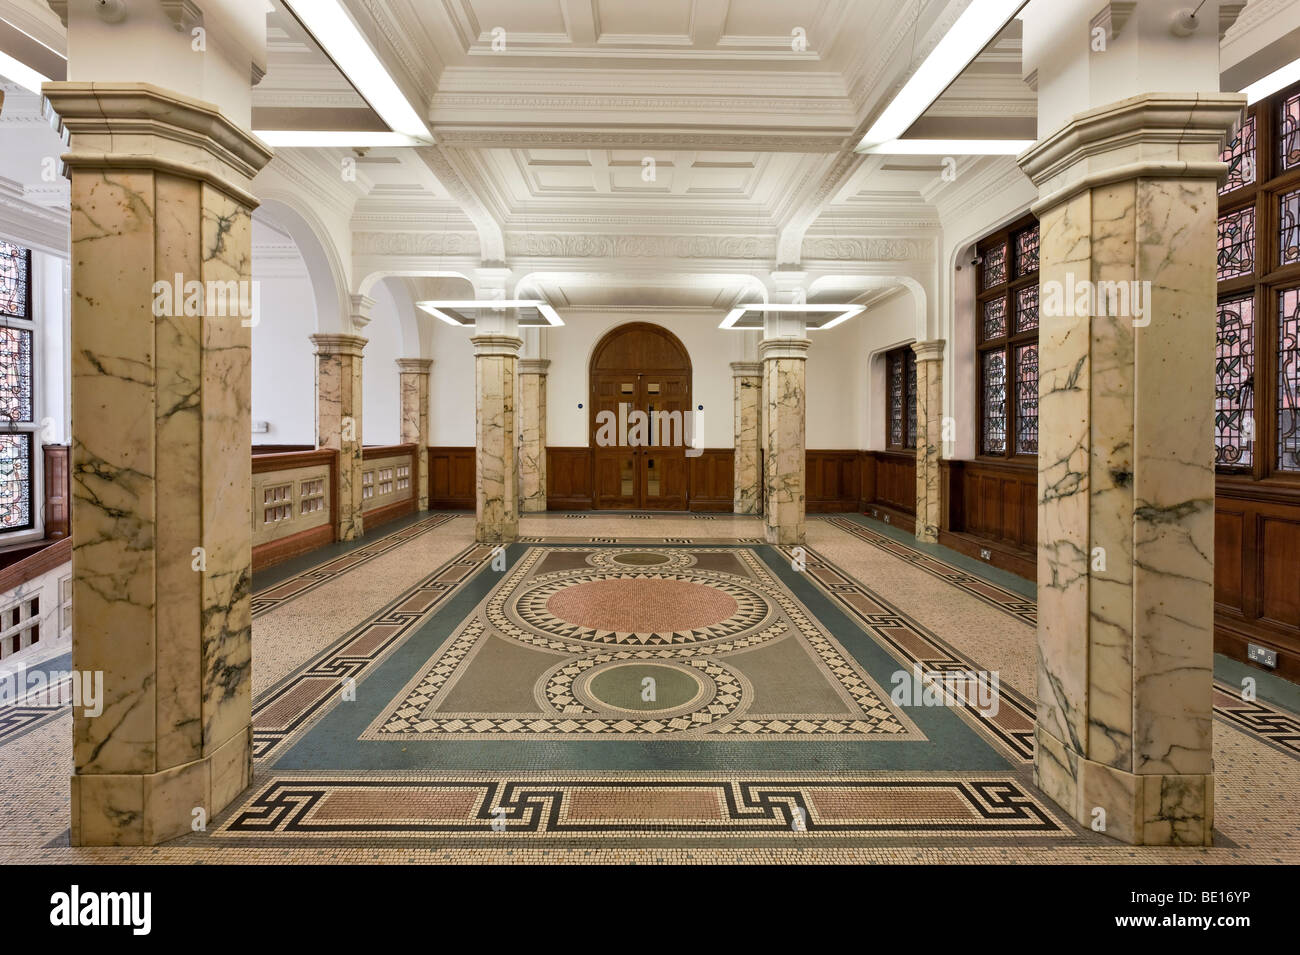 Royal institution of chartered surveyors headquarters in for Royal institute of chartered architects